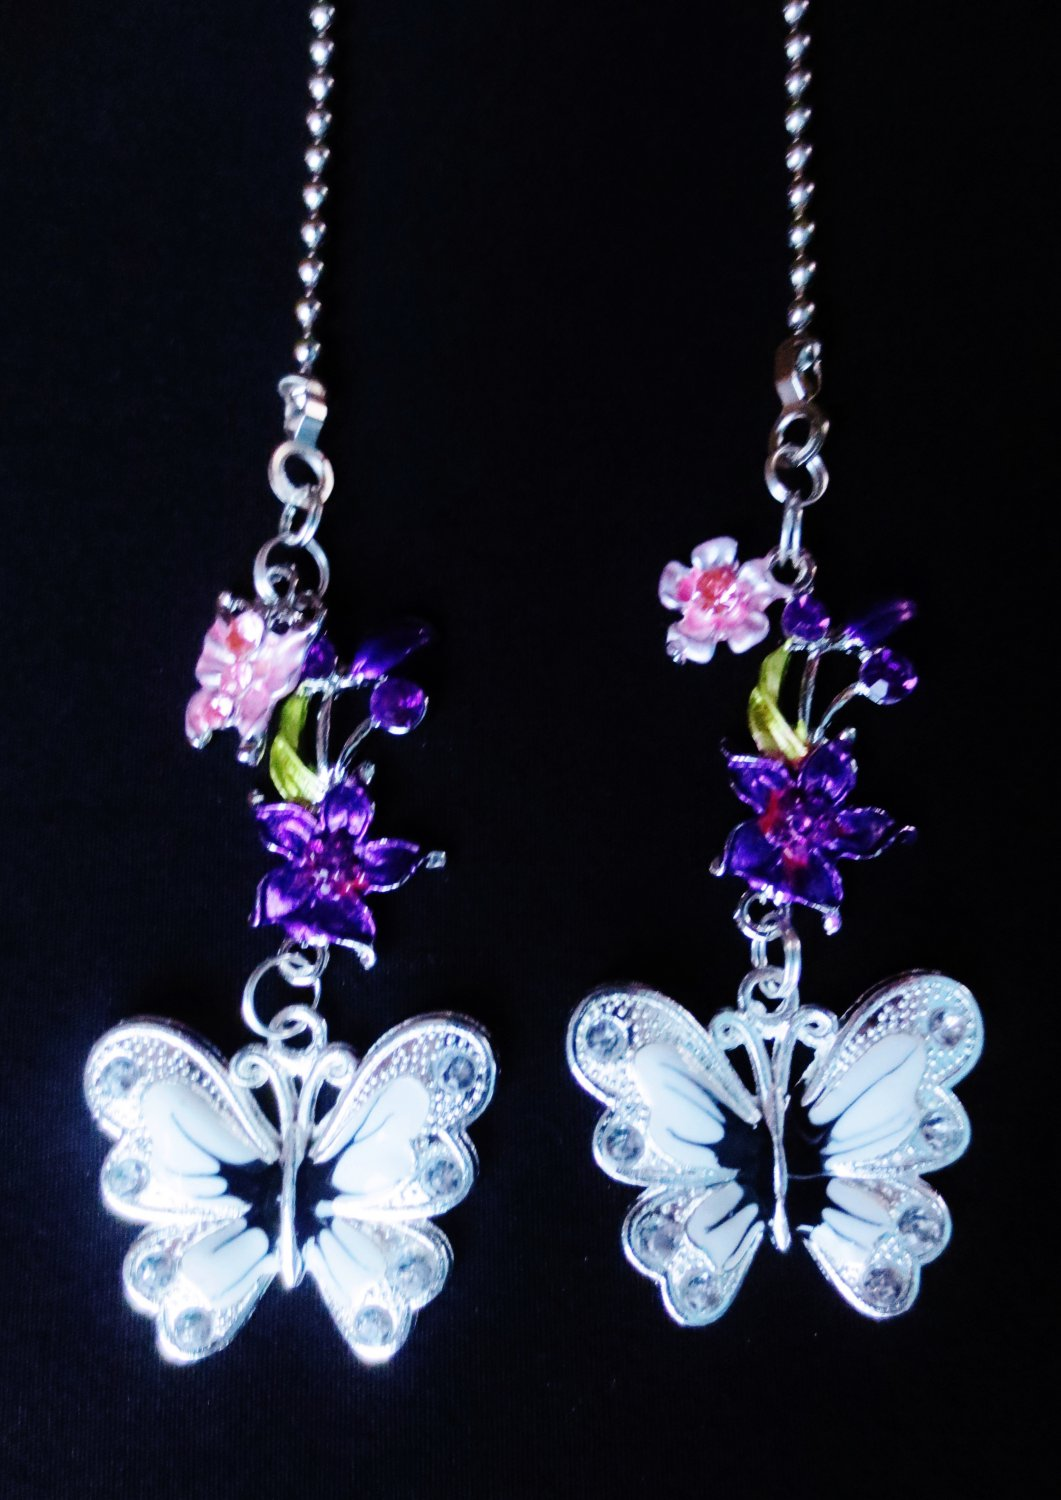 White Flower Ceiling Fan Butterfly Flower Nature Ceiling Fan Light Pull Chain Set M 77